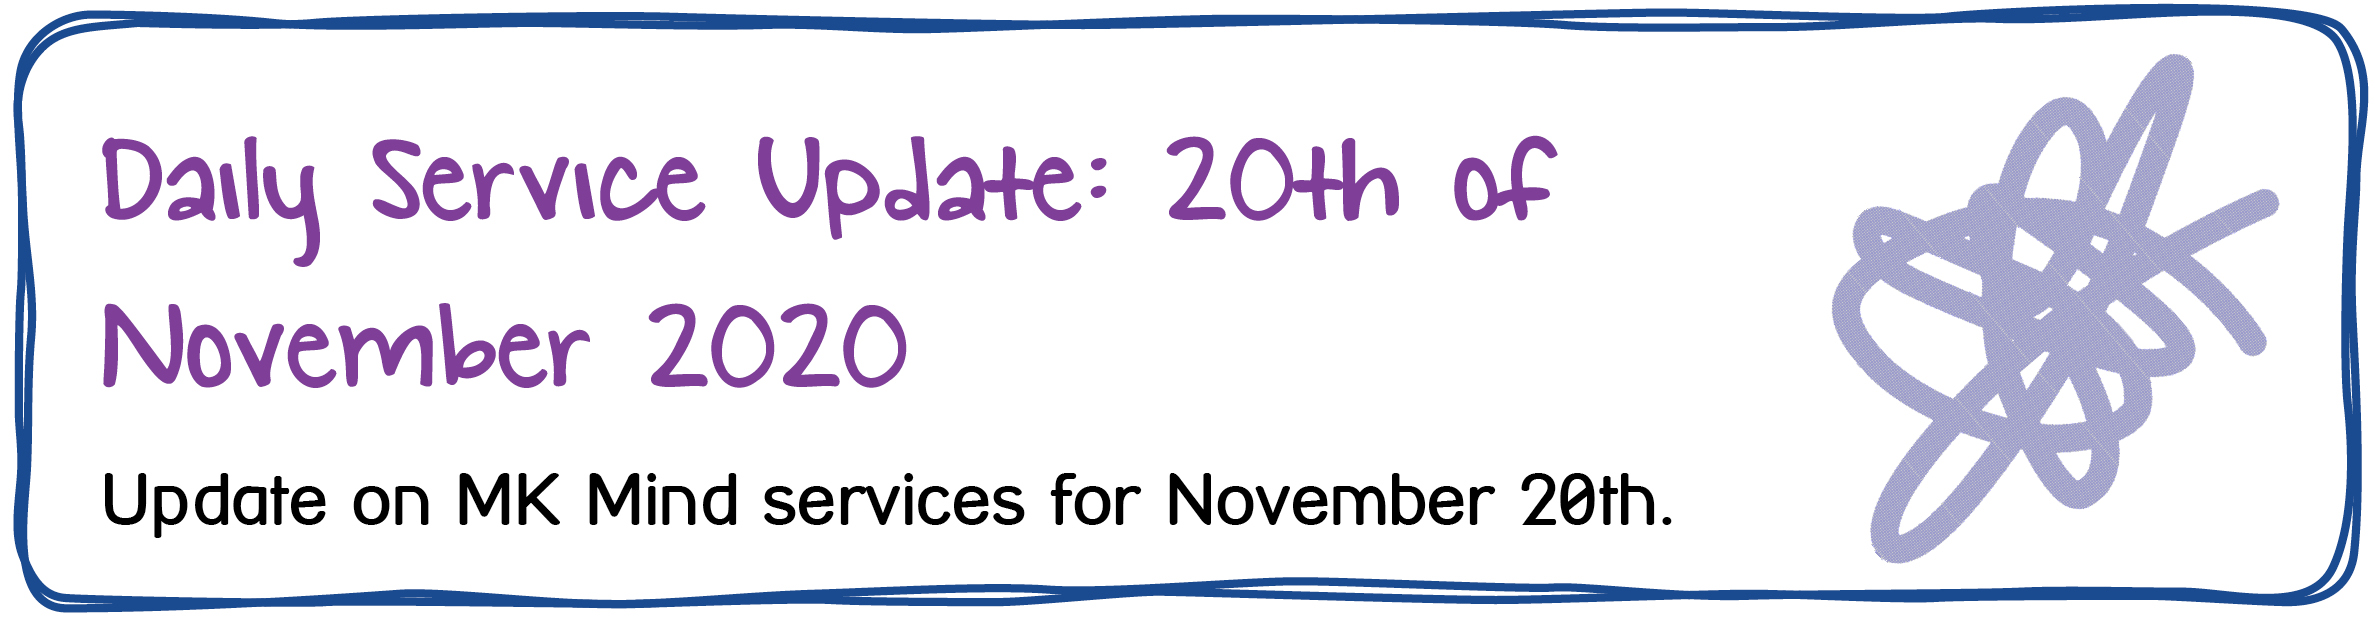 Daily Service Update: 20th of November 2020. Update on Mid Kent Mind services for November 20th.